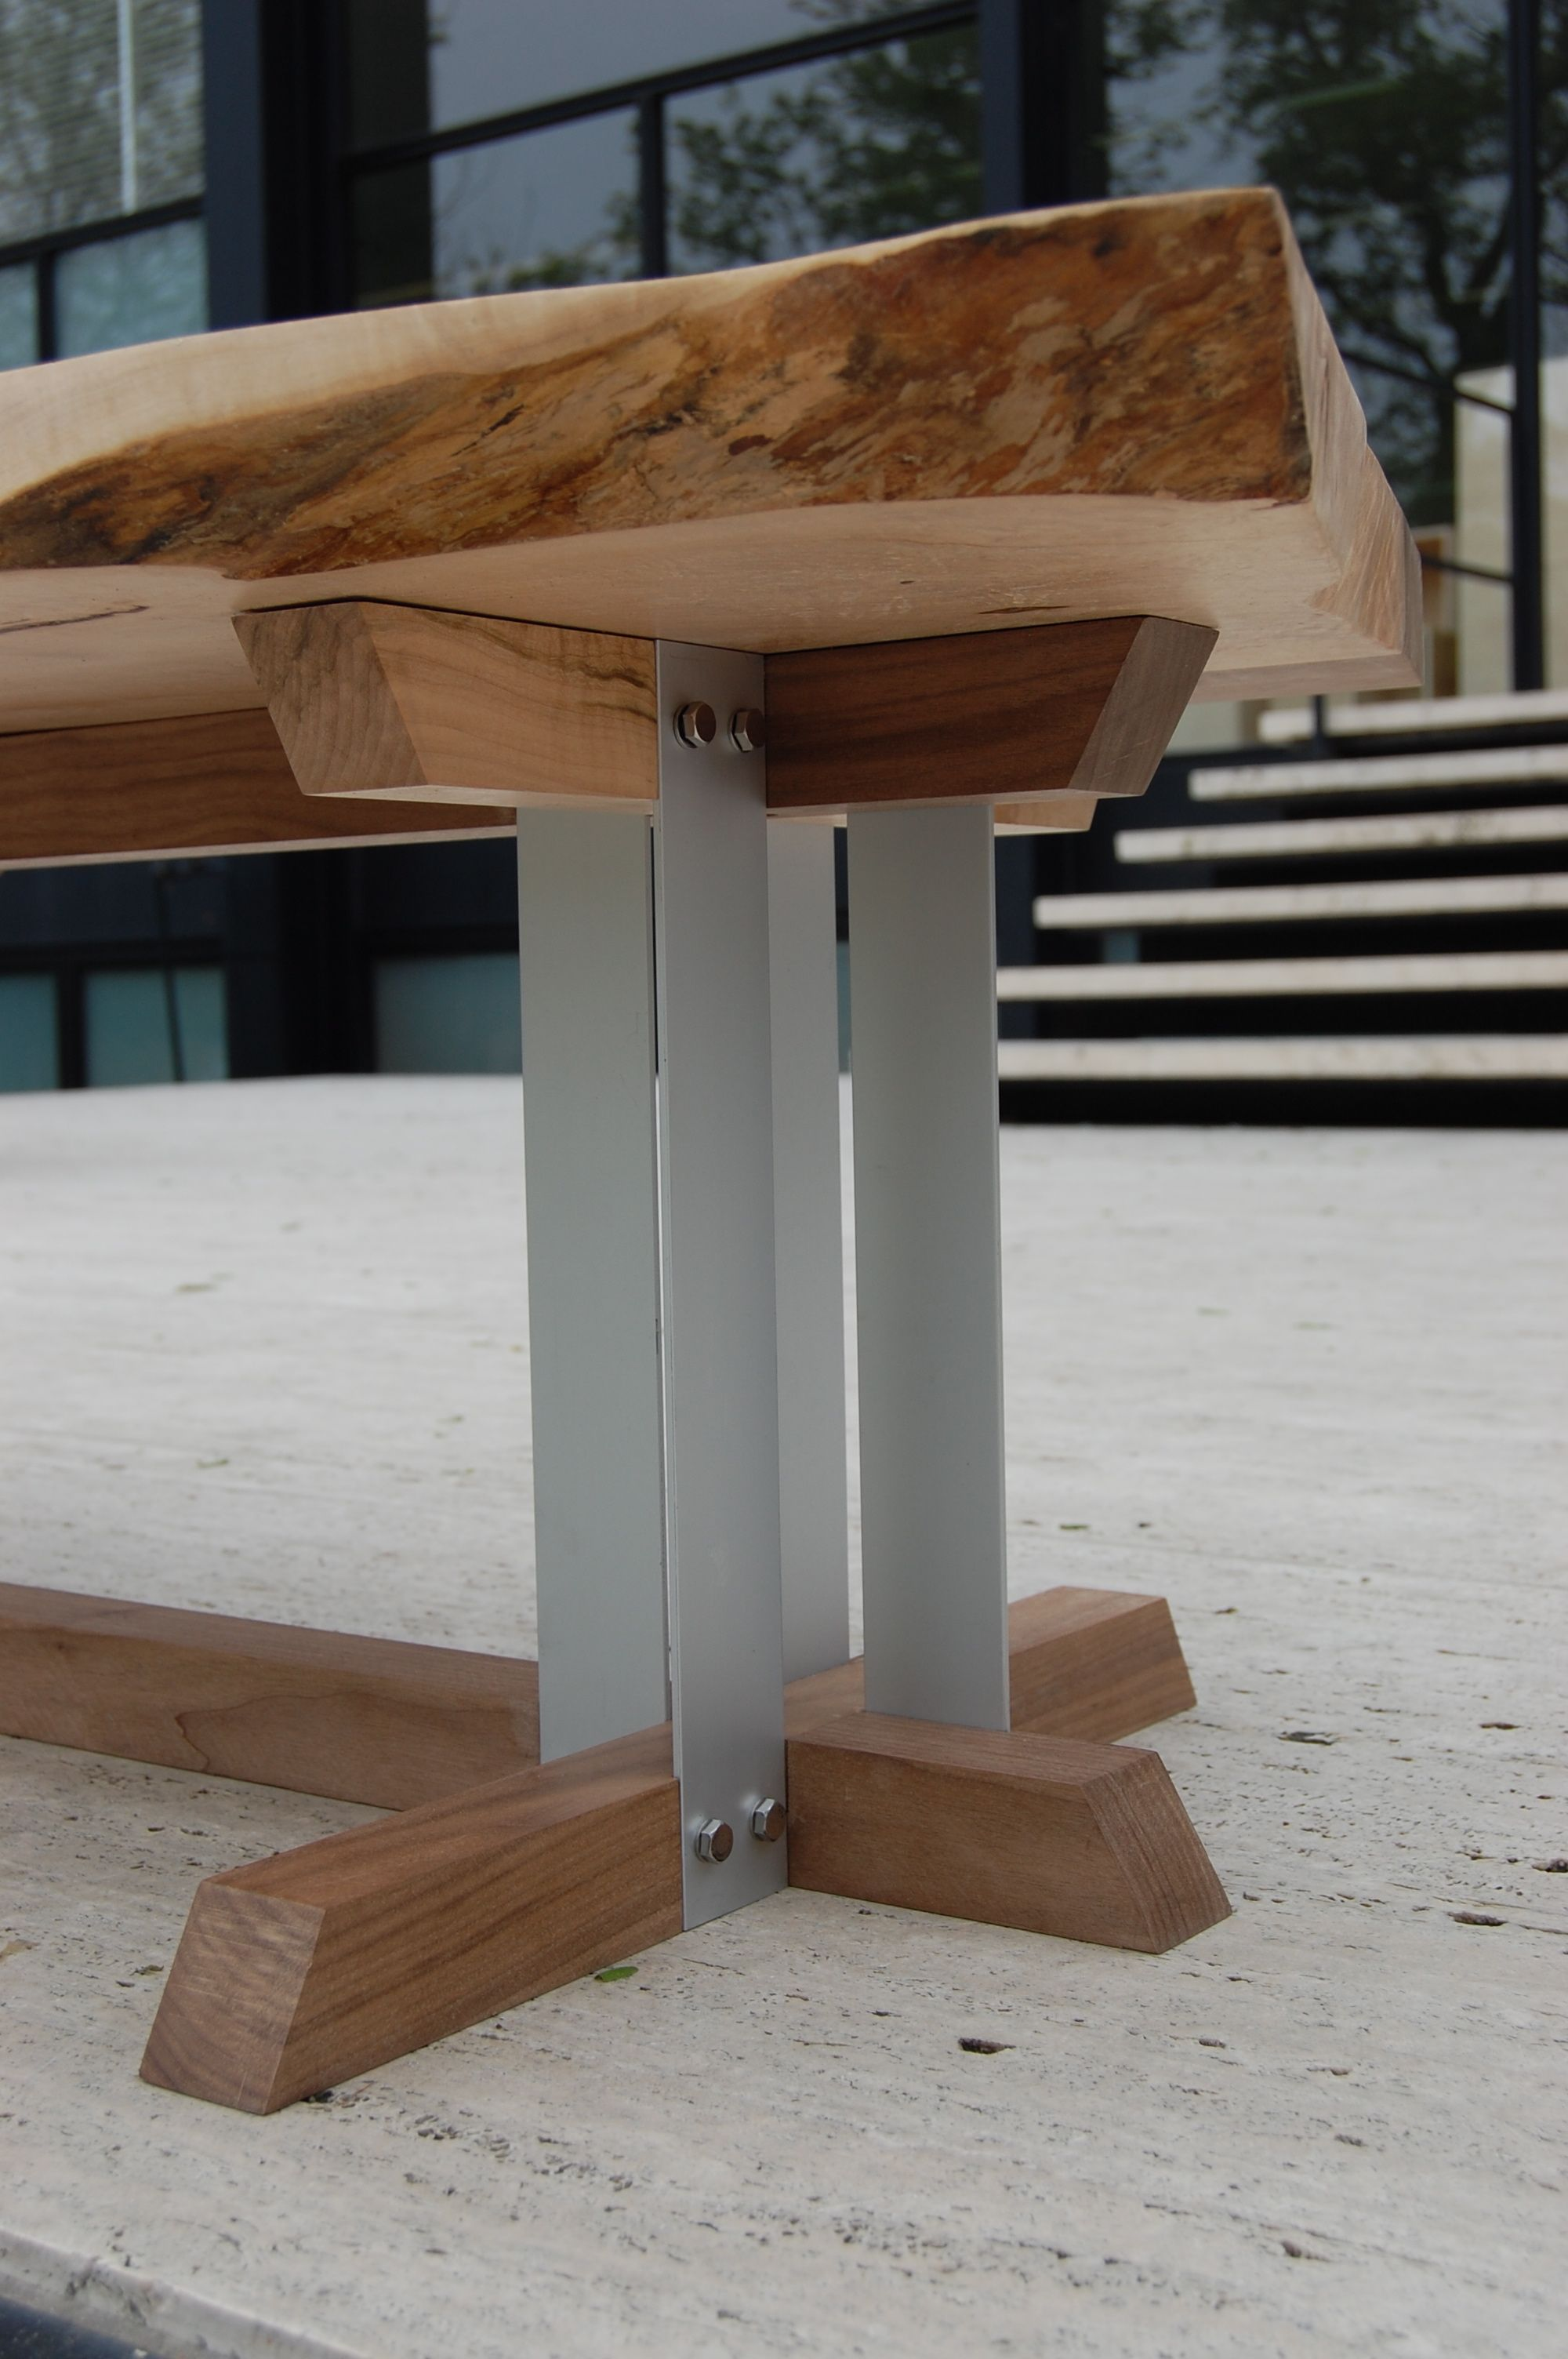 Spalted Maple Coffee Table with Waterfall Edge by EmeraldCitySlabs